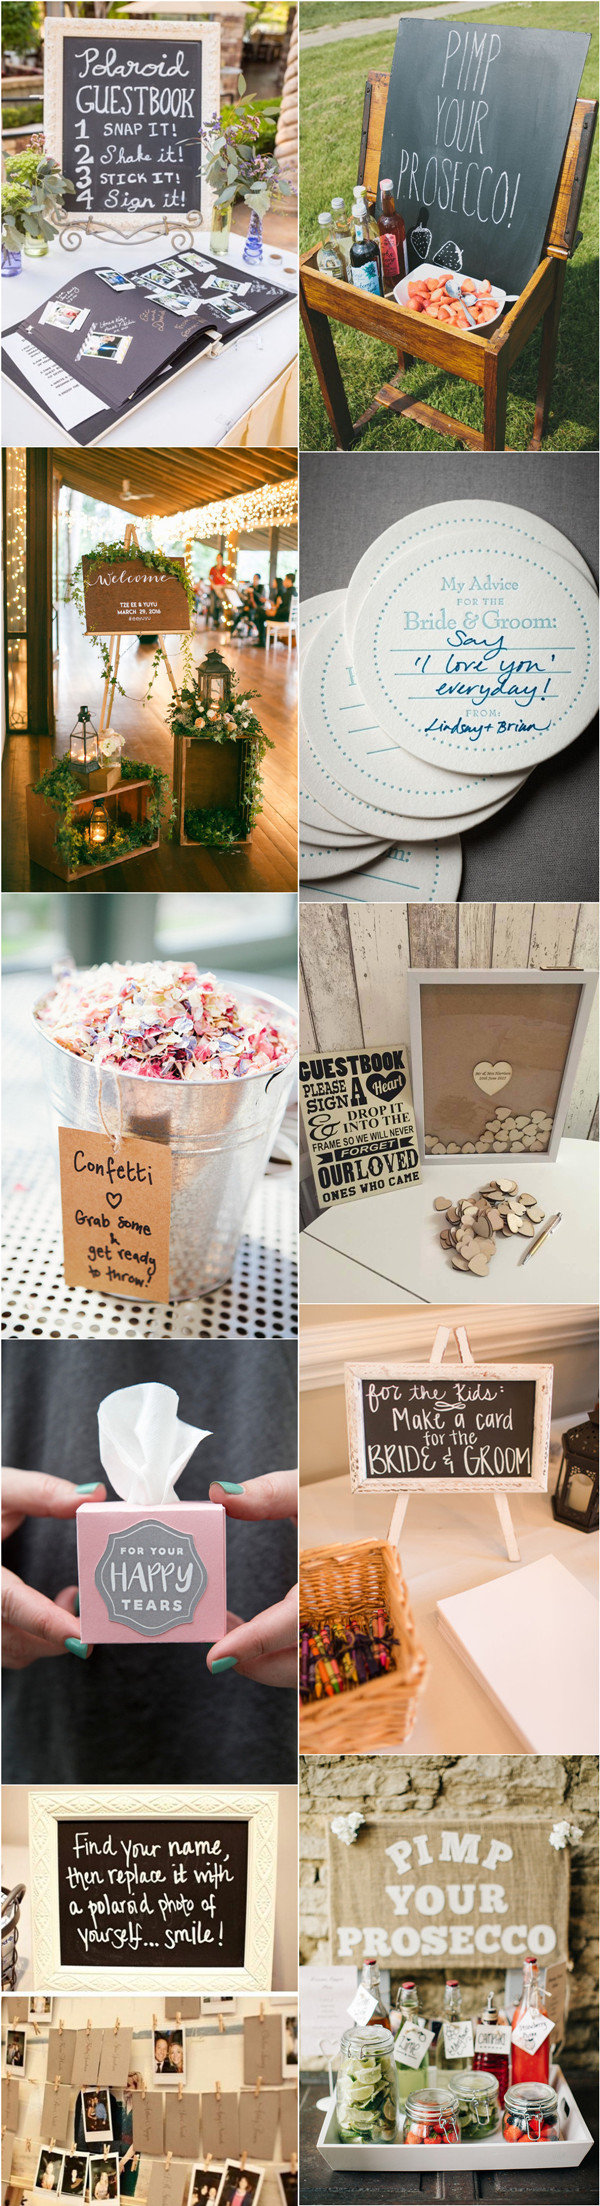 top 10 wedding ideas from pinterest